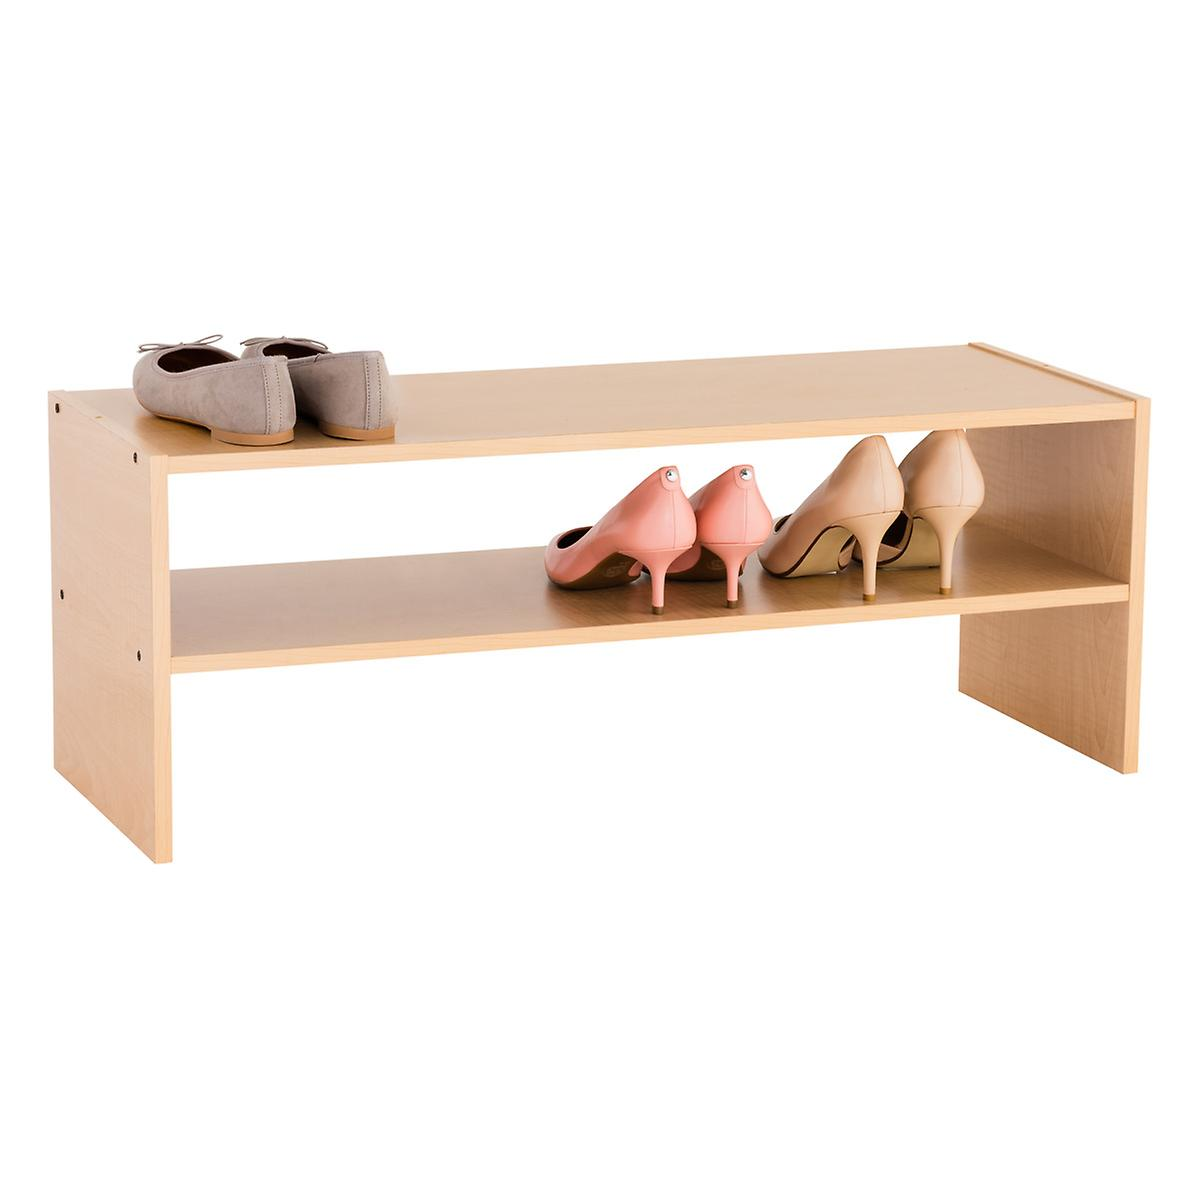 Shelf shoe